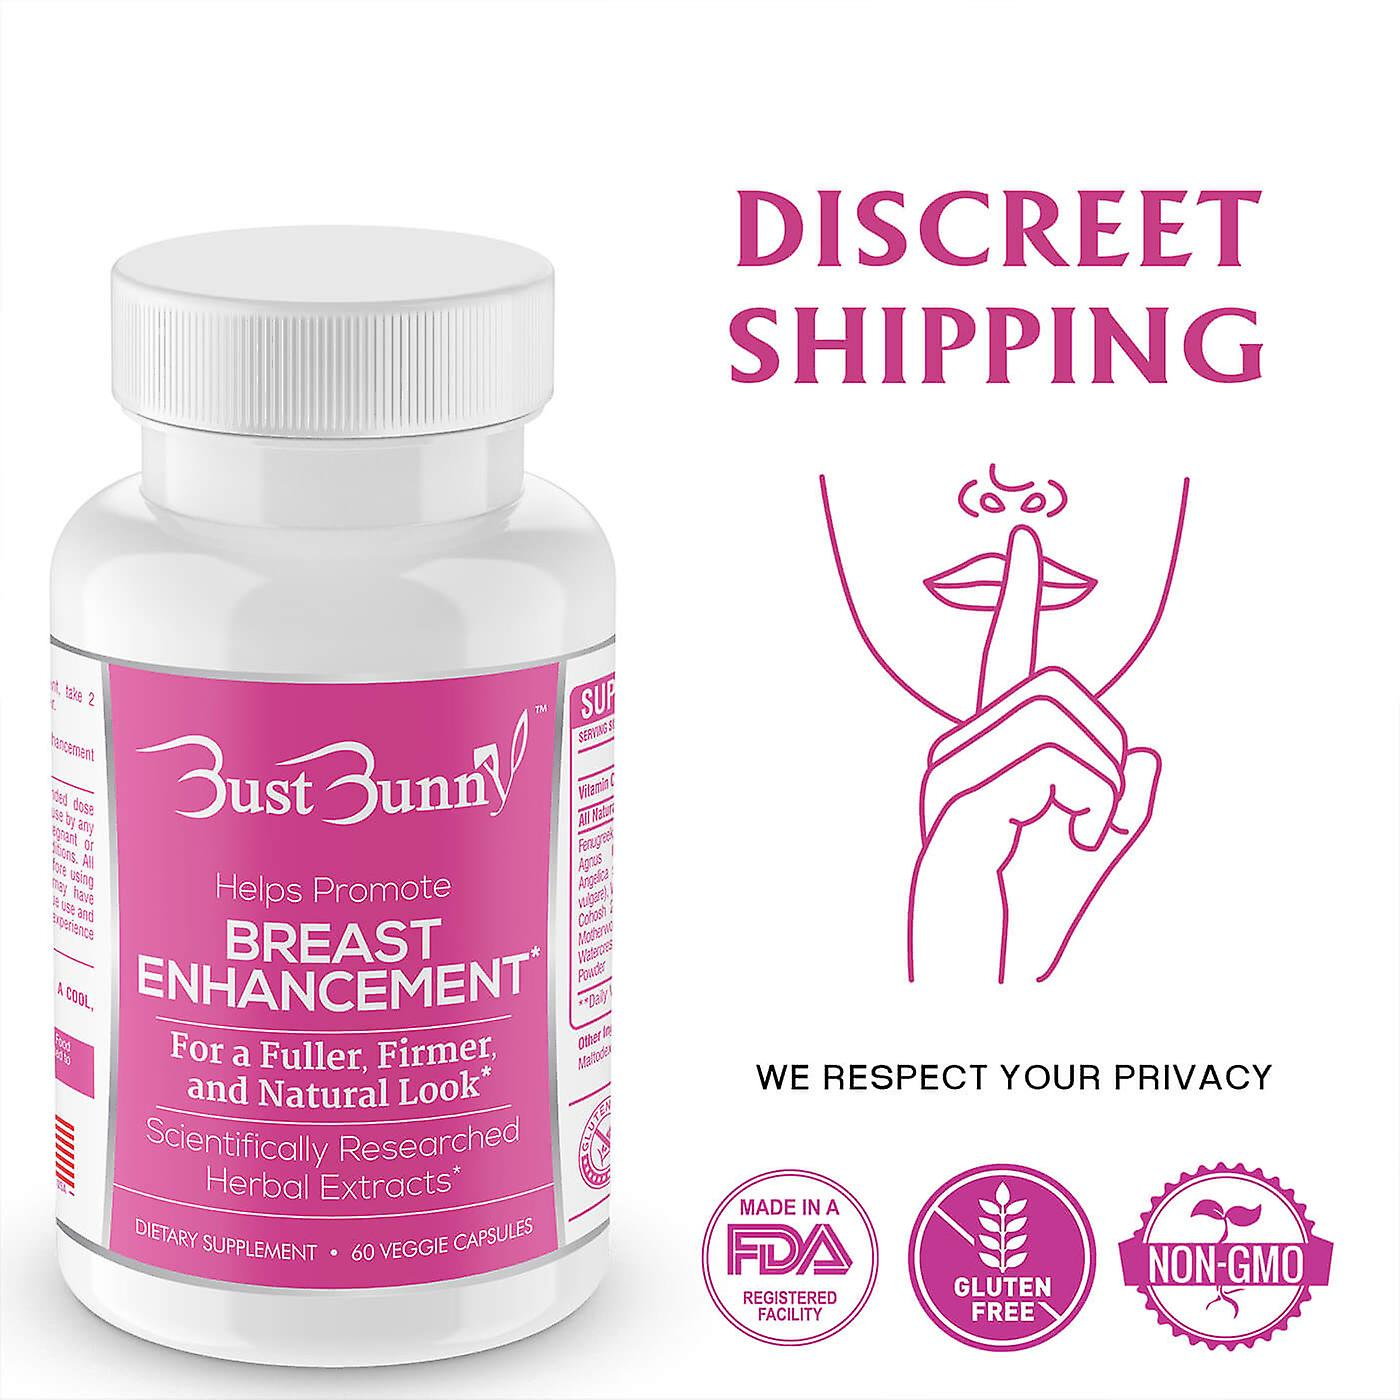 Bust Bunny Breast Enhancement supplement 3 Month Supply